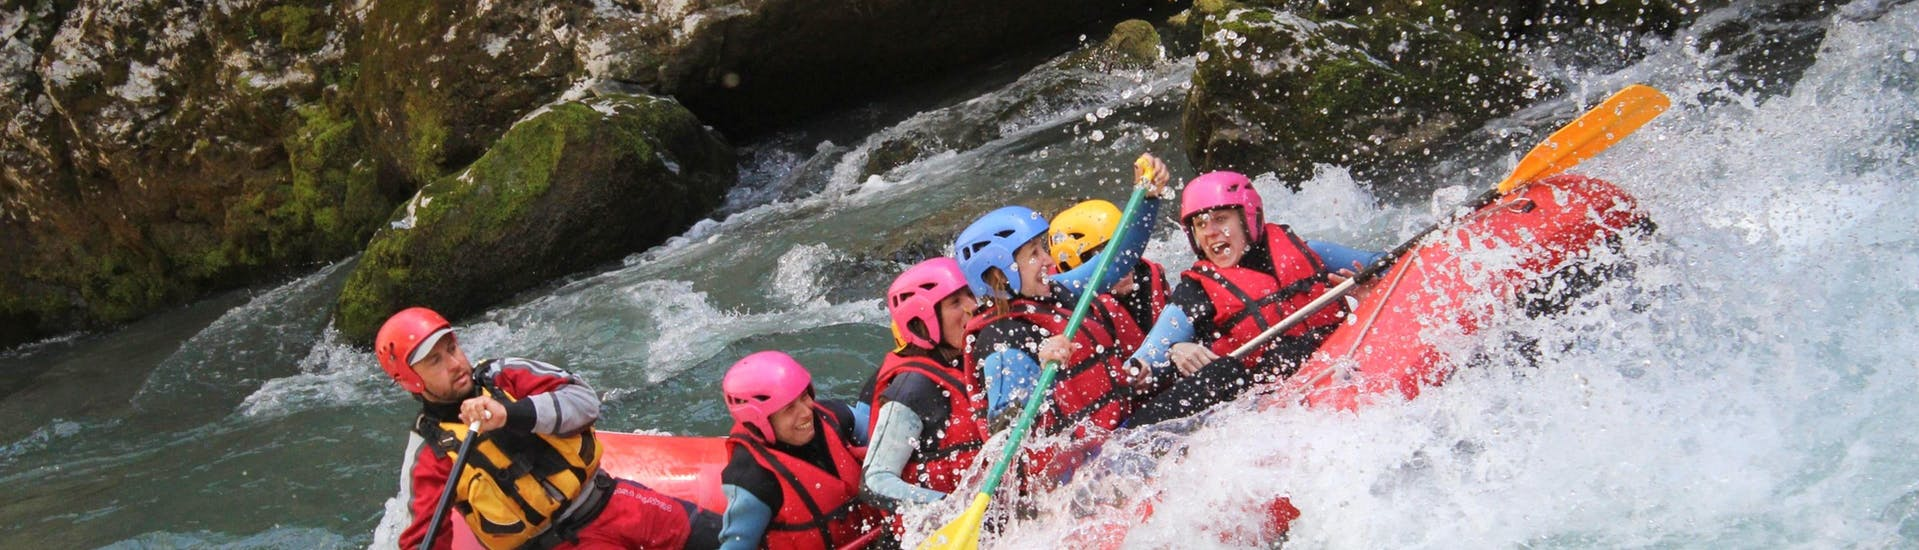 classic-rafting-on-the-saane-river-rivieres-et-aventures-hero